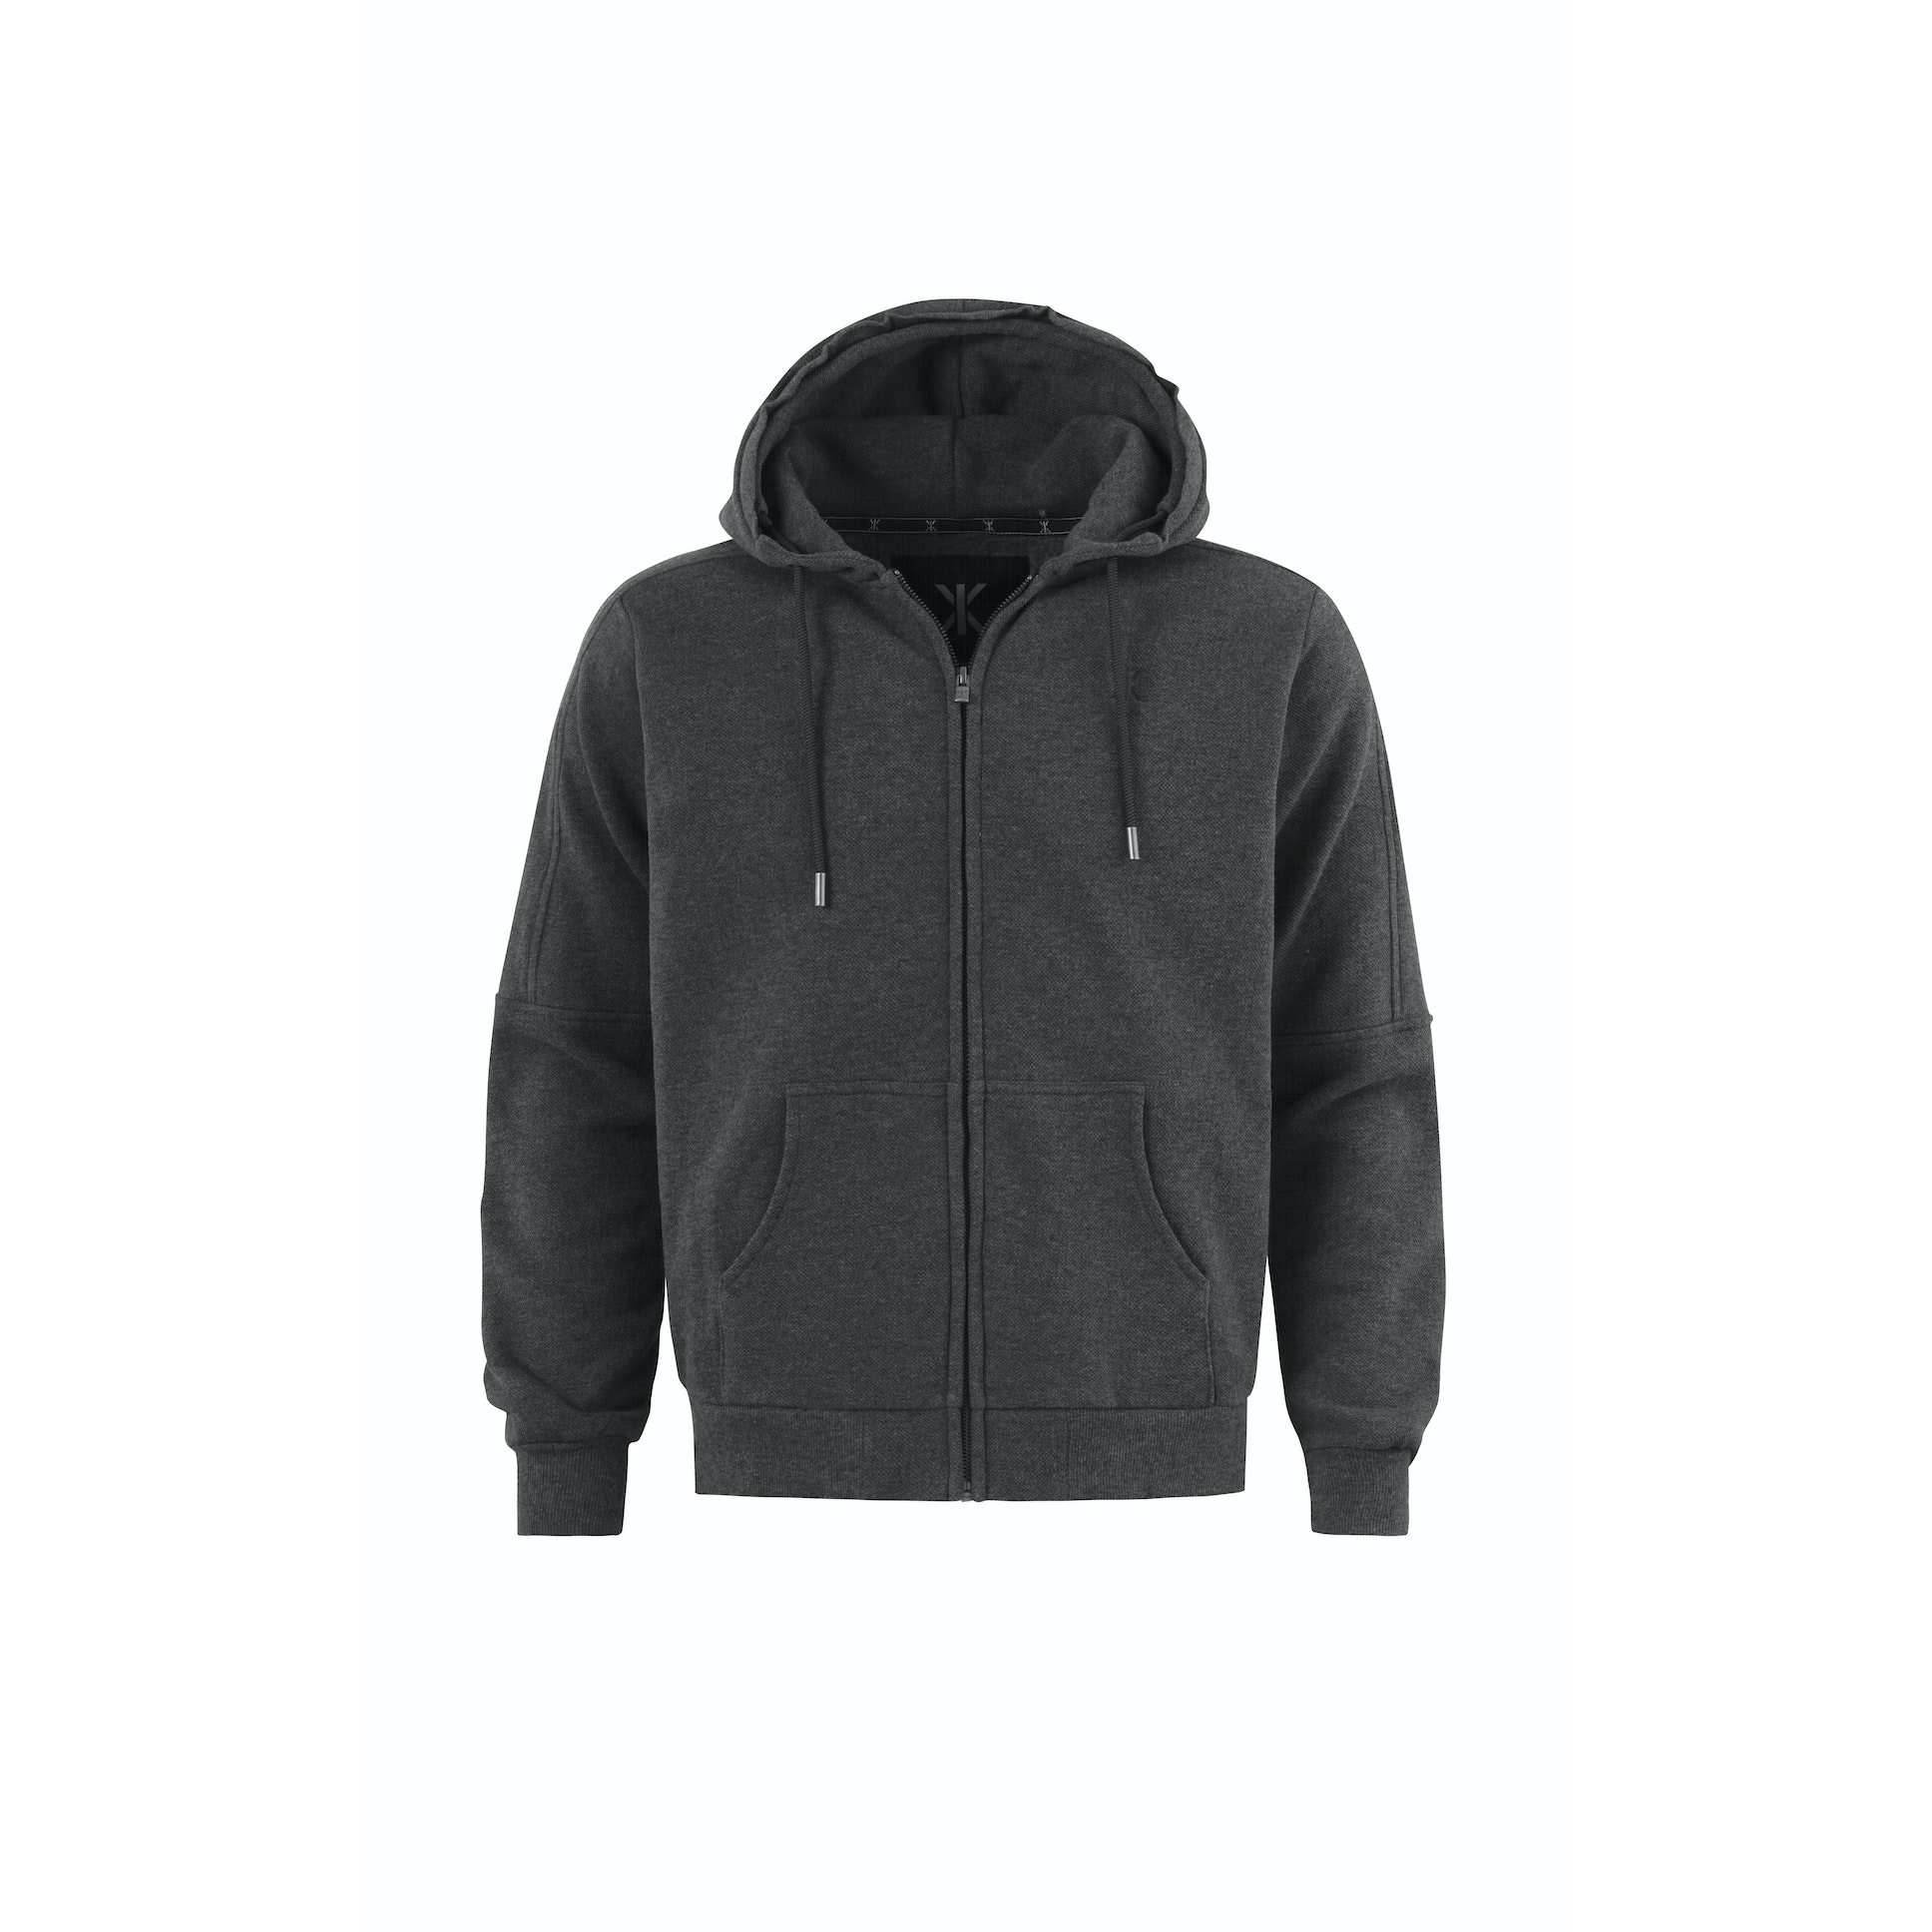 Slow Zip Hoodie Dark Grey Melange from OnePiece :: Buy from Onepiece on The UK High Street